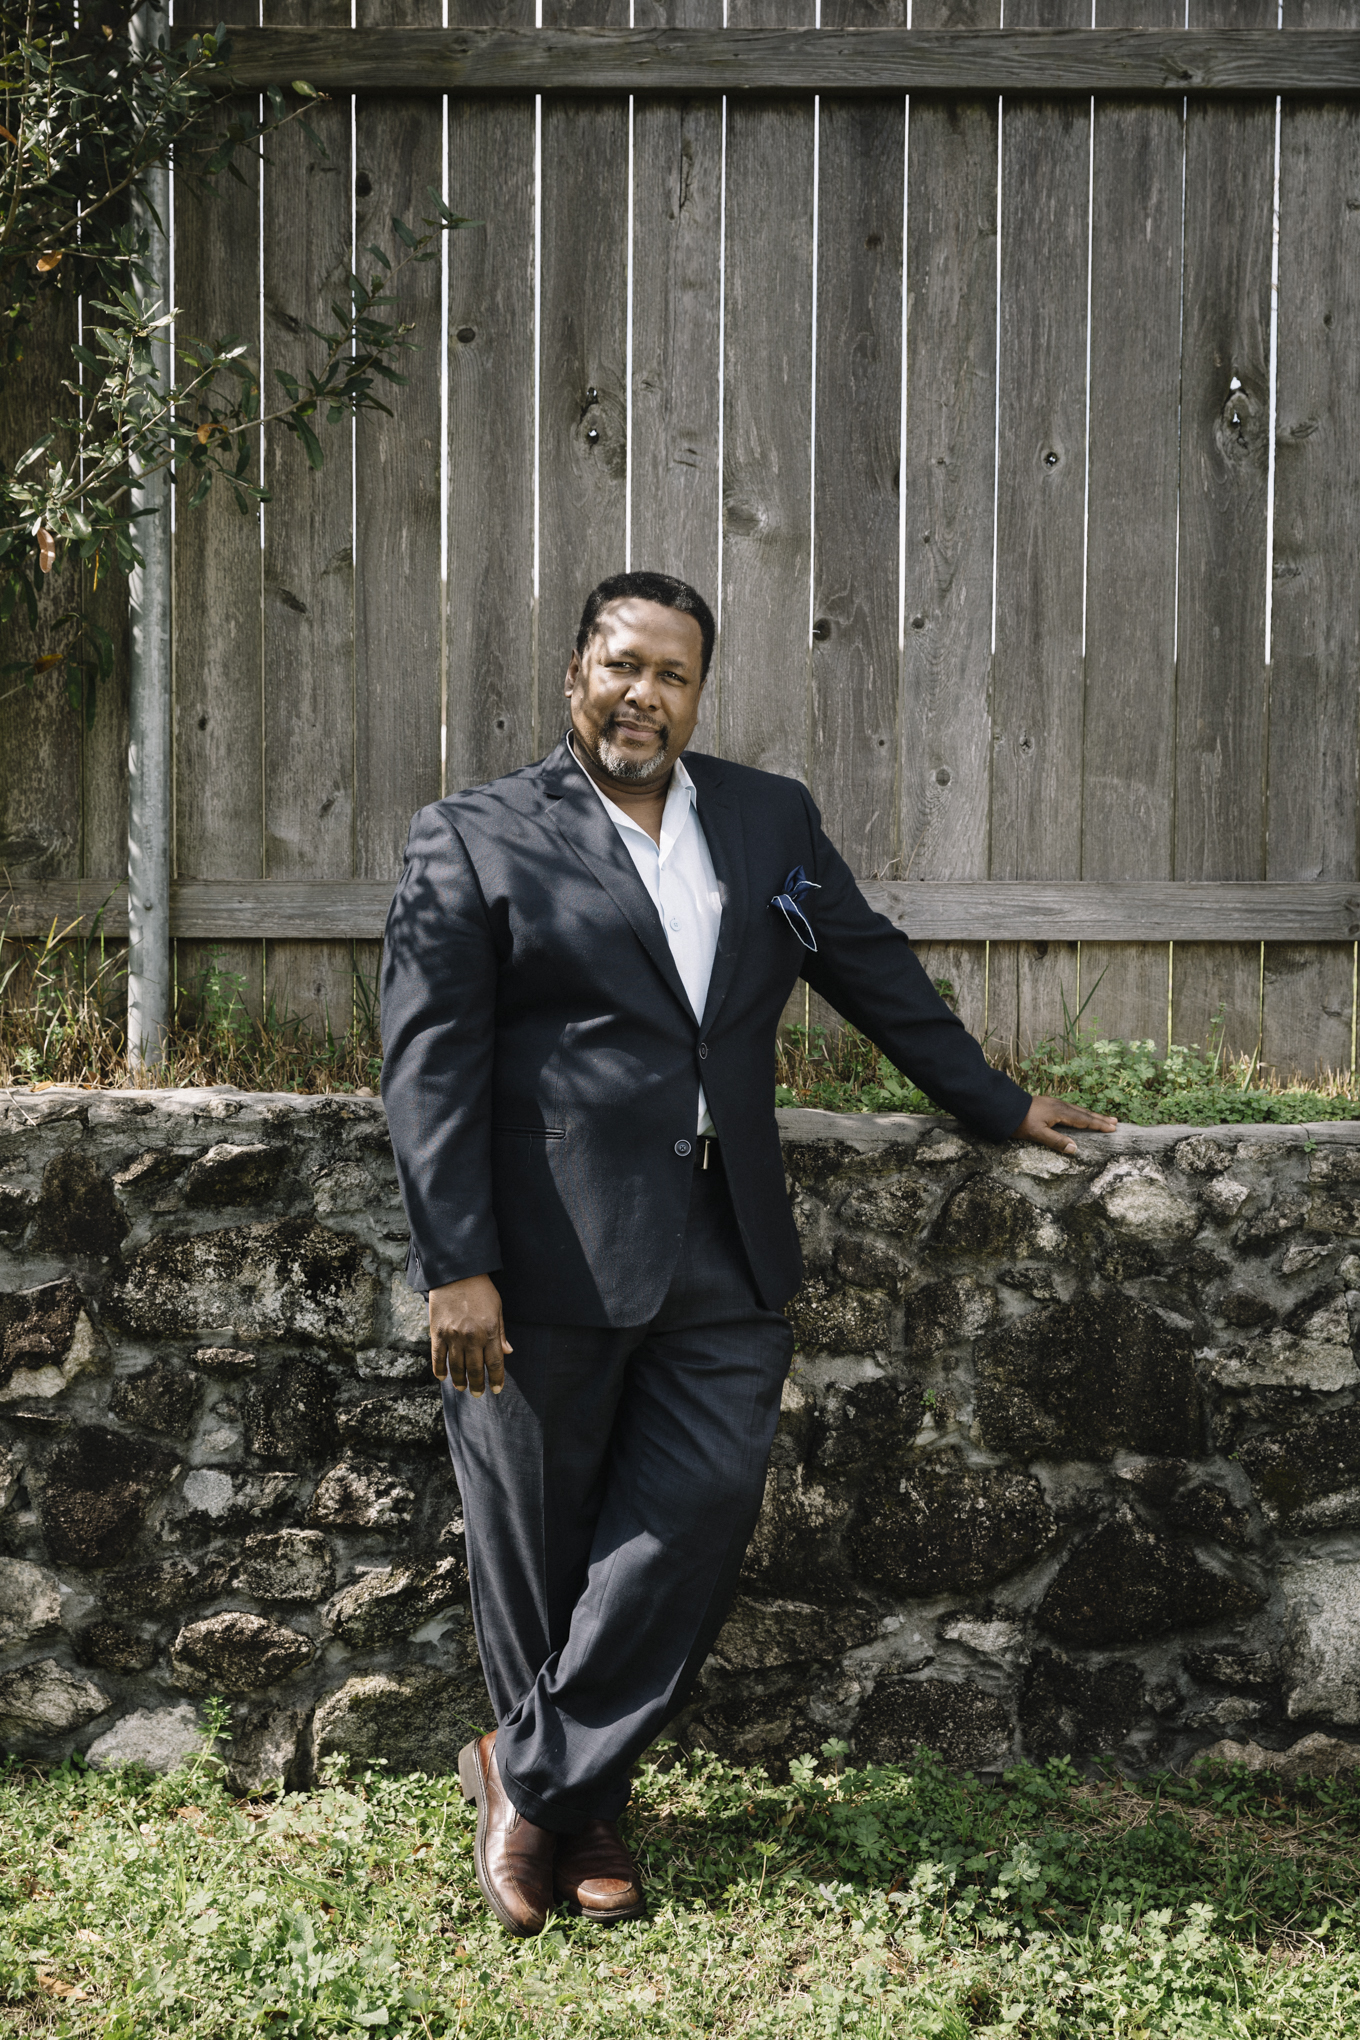 New Orleans, LA - Feb. 7, 2019 - Actor Wendell Pierce photographed at his home in the Pontchartain Park neighborhood of New Orleans.